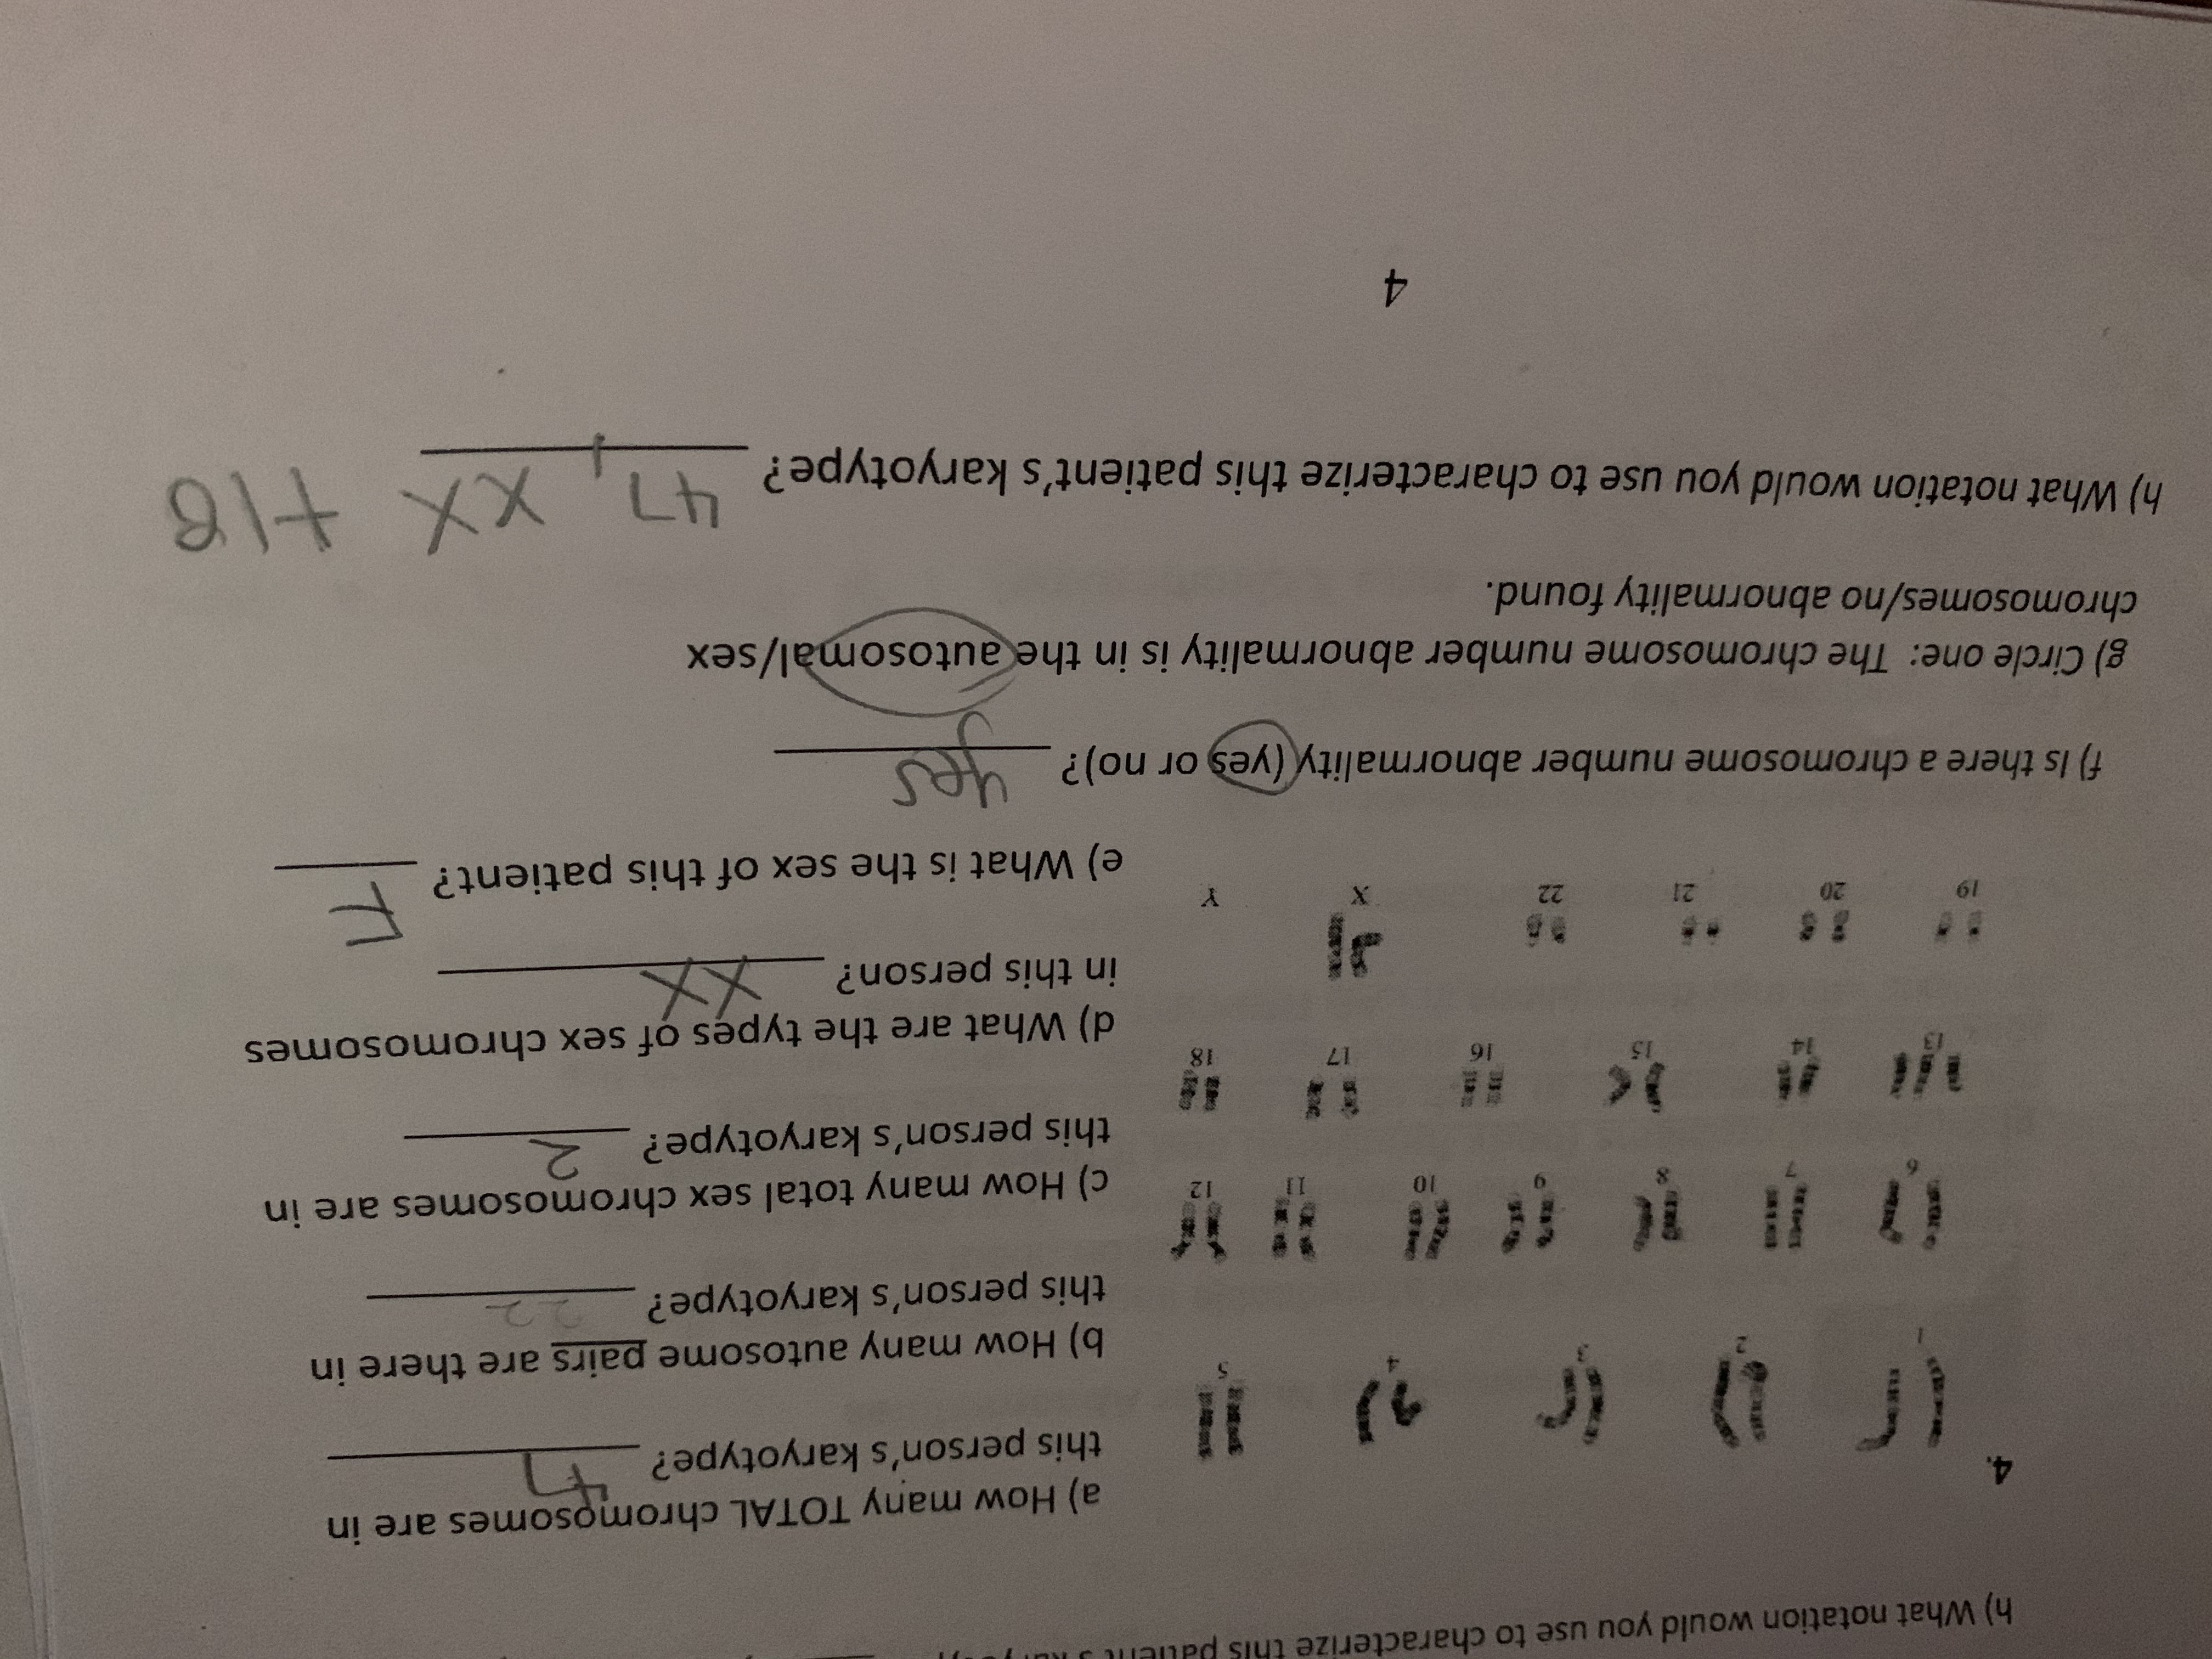 t SEE joR h) What notation would you use to characterize thls a) How many TOTAL chromosomes are in this person's karyotype? it ( t à * # C b) How many autosome pairs are there in this person's karyotype? 12 II c) How many total sex chromosomes are in this person's karyotype? 2 S 18 15 17 Fl 91 d) What are the types of sex chromosomes in this person?_ X @E 12 8 gd X e) What is the sex of this patient? f) Is there a chromosome number abnormality (yes or no)? g) Circle one: The chromosome number abnormality is in theautosomal/sex chromosomes/no abnormality found. ग्की चOu. h) What notation would you use to characterize this patient's karyotype? Lh